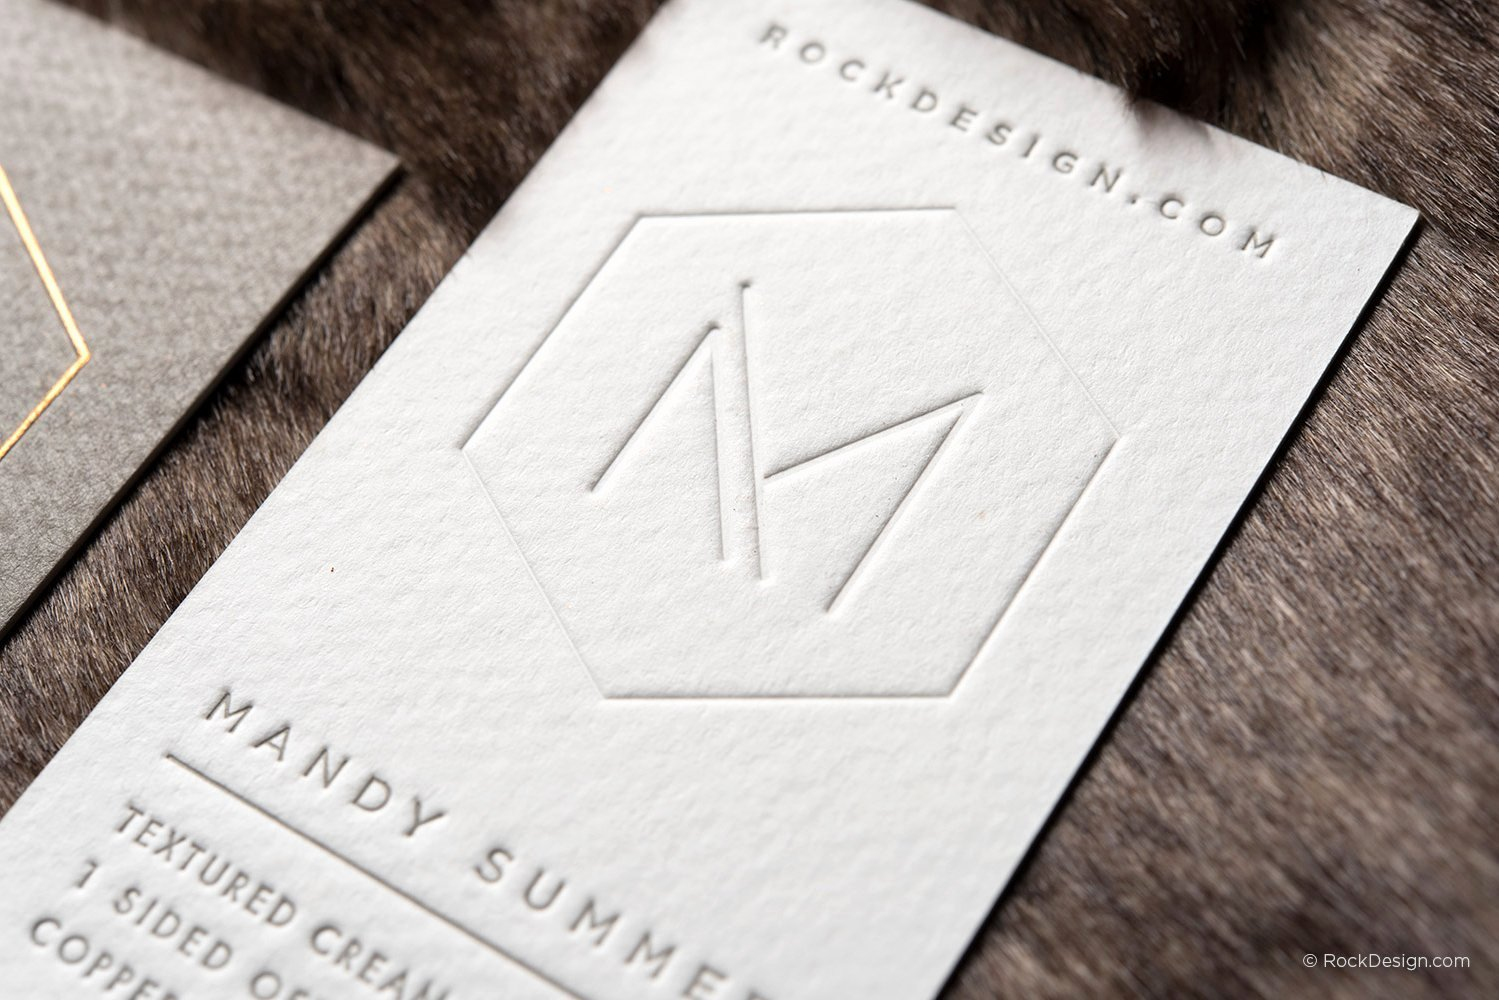 Interior Design Business Card Awesome Interior Designer Template On Textured Stock with Emboss